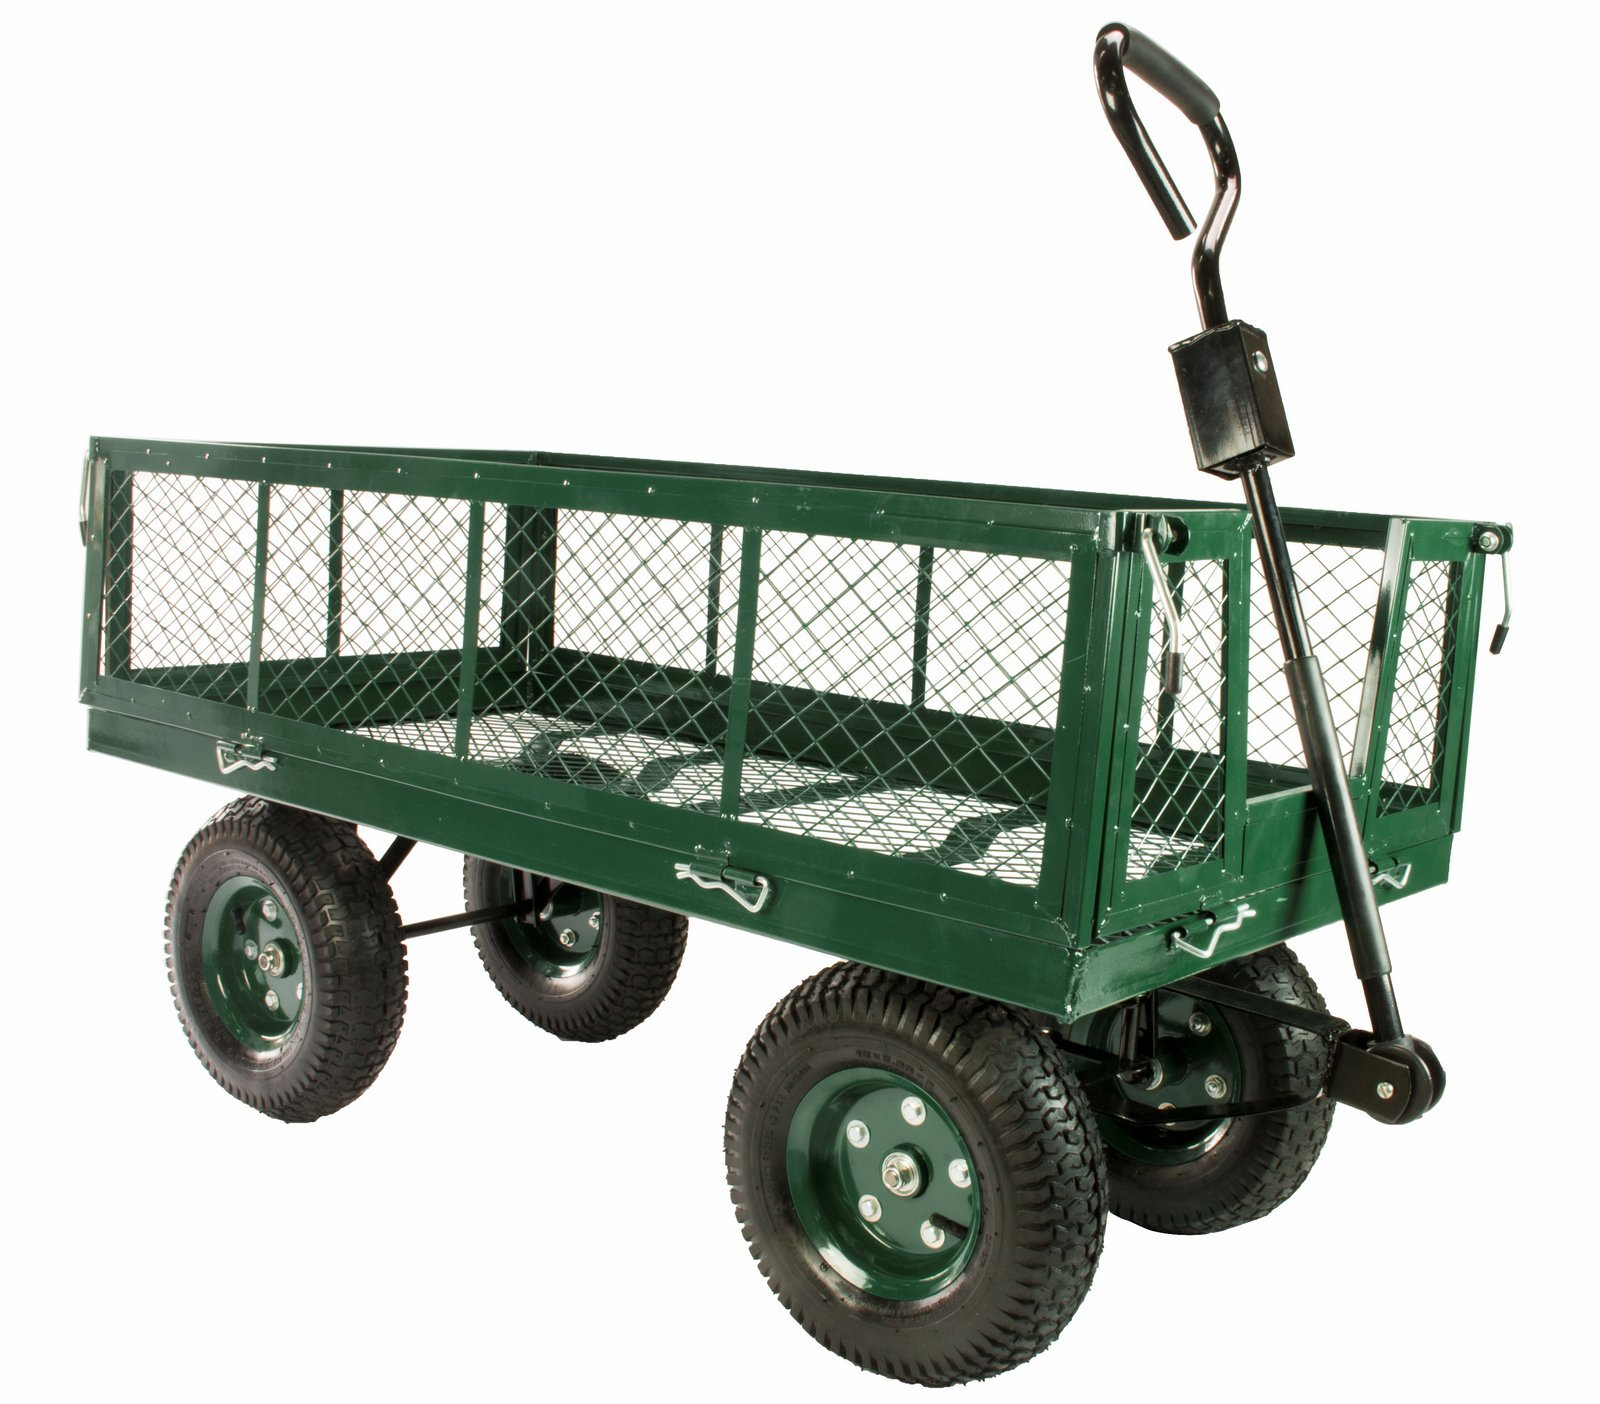 Erie Tools 1000 lbs Flatbed Utility Garden Cart 48''x 24'' with Removable Sides by Erie Tools